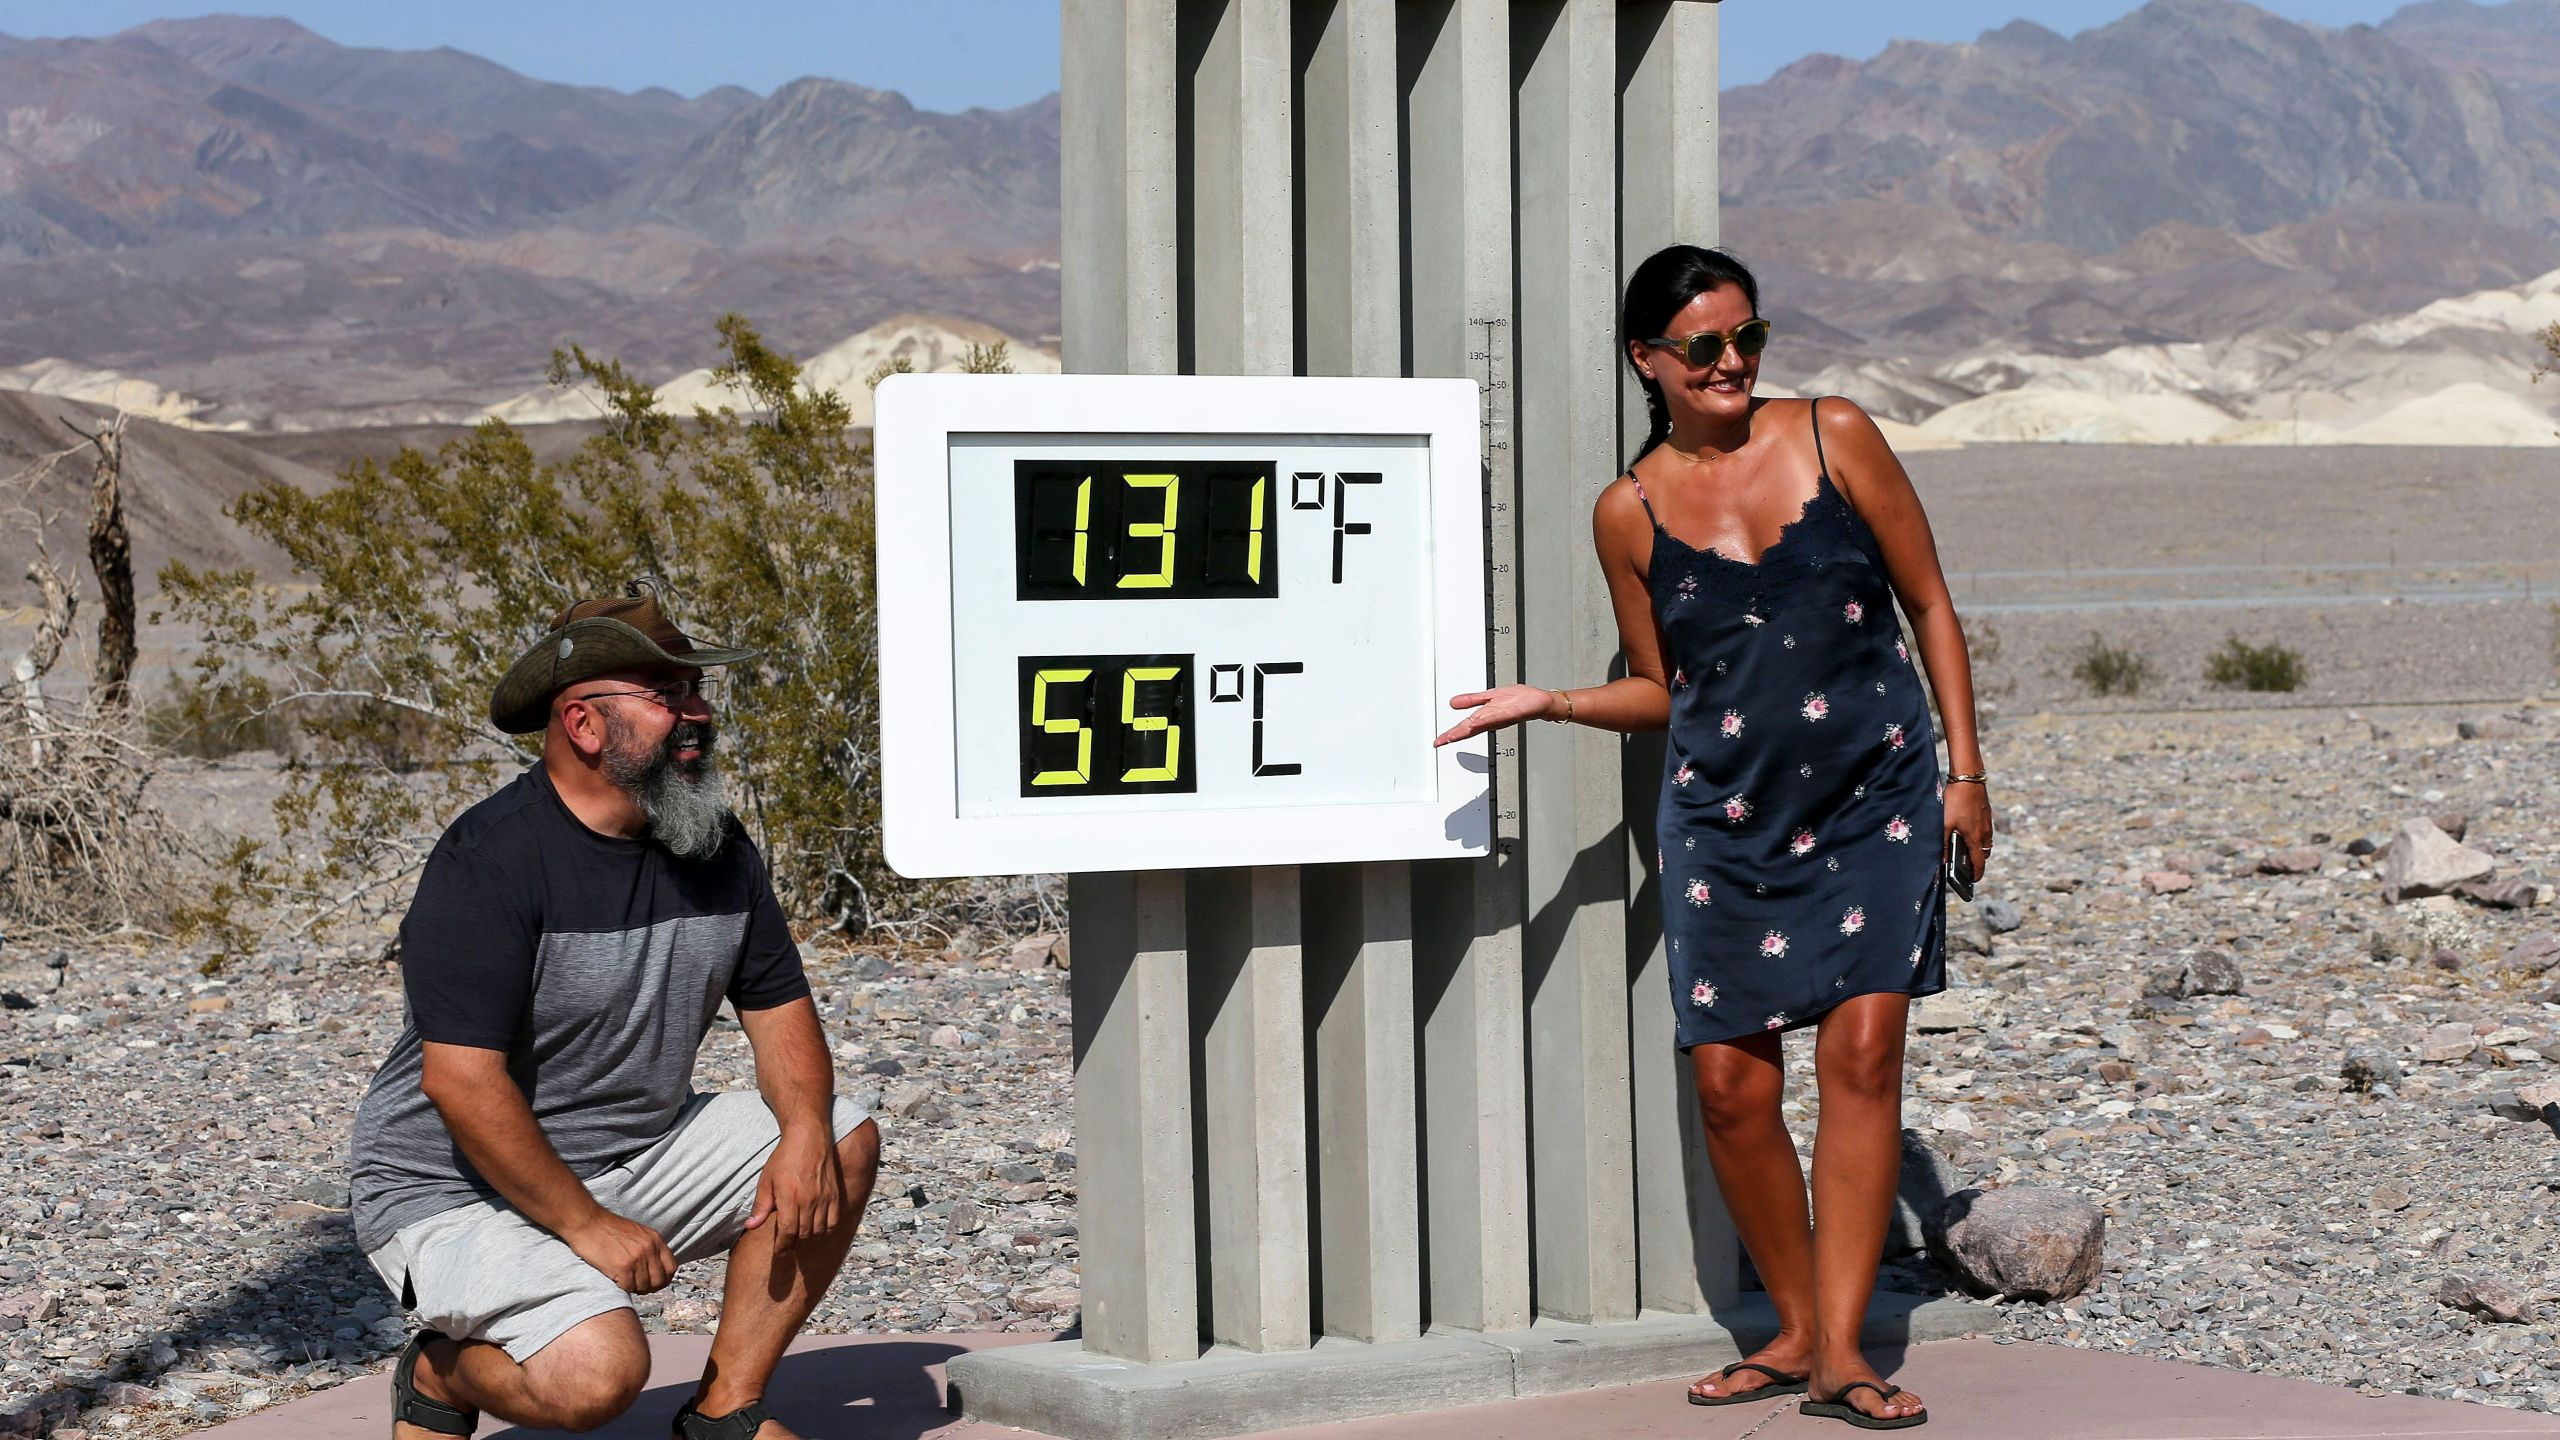 Visitors gather for a photo in front of an unofficial thermometer at Furnace Creek Visitor Center on August 17, 2020 in Death Valley National Park. (Mario Tama/Getty Images)